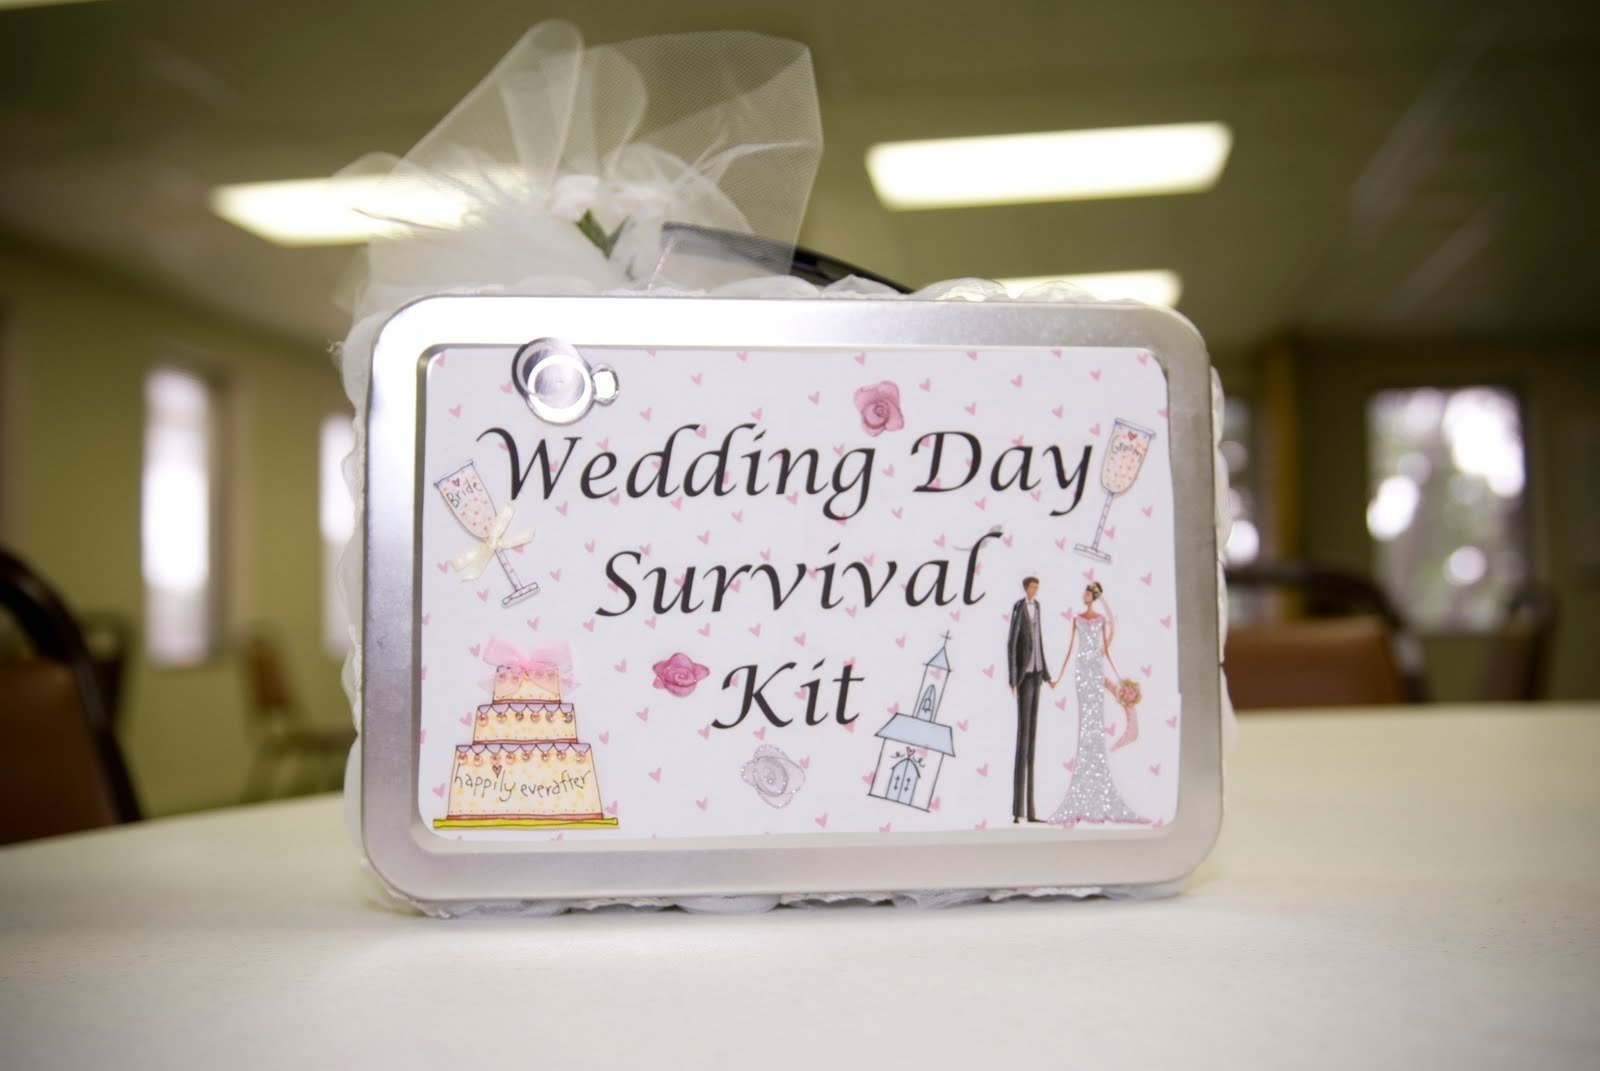 lovable bride to be ideas creative word as bridal shower gift ideas